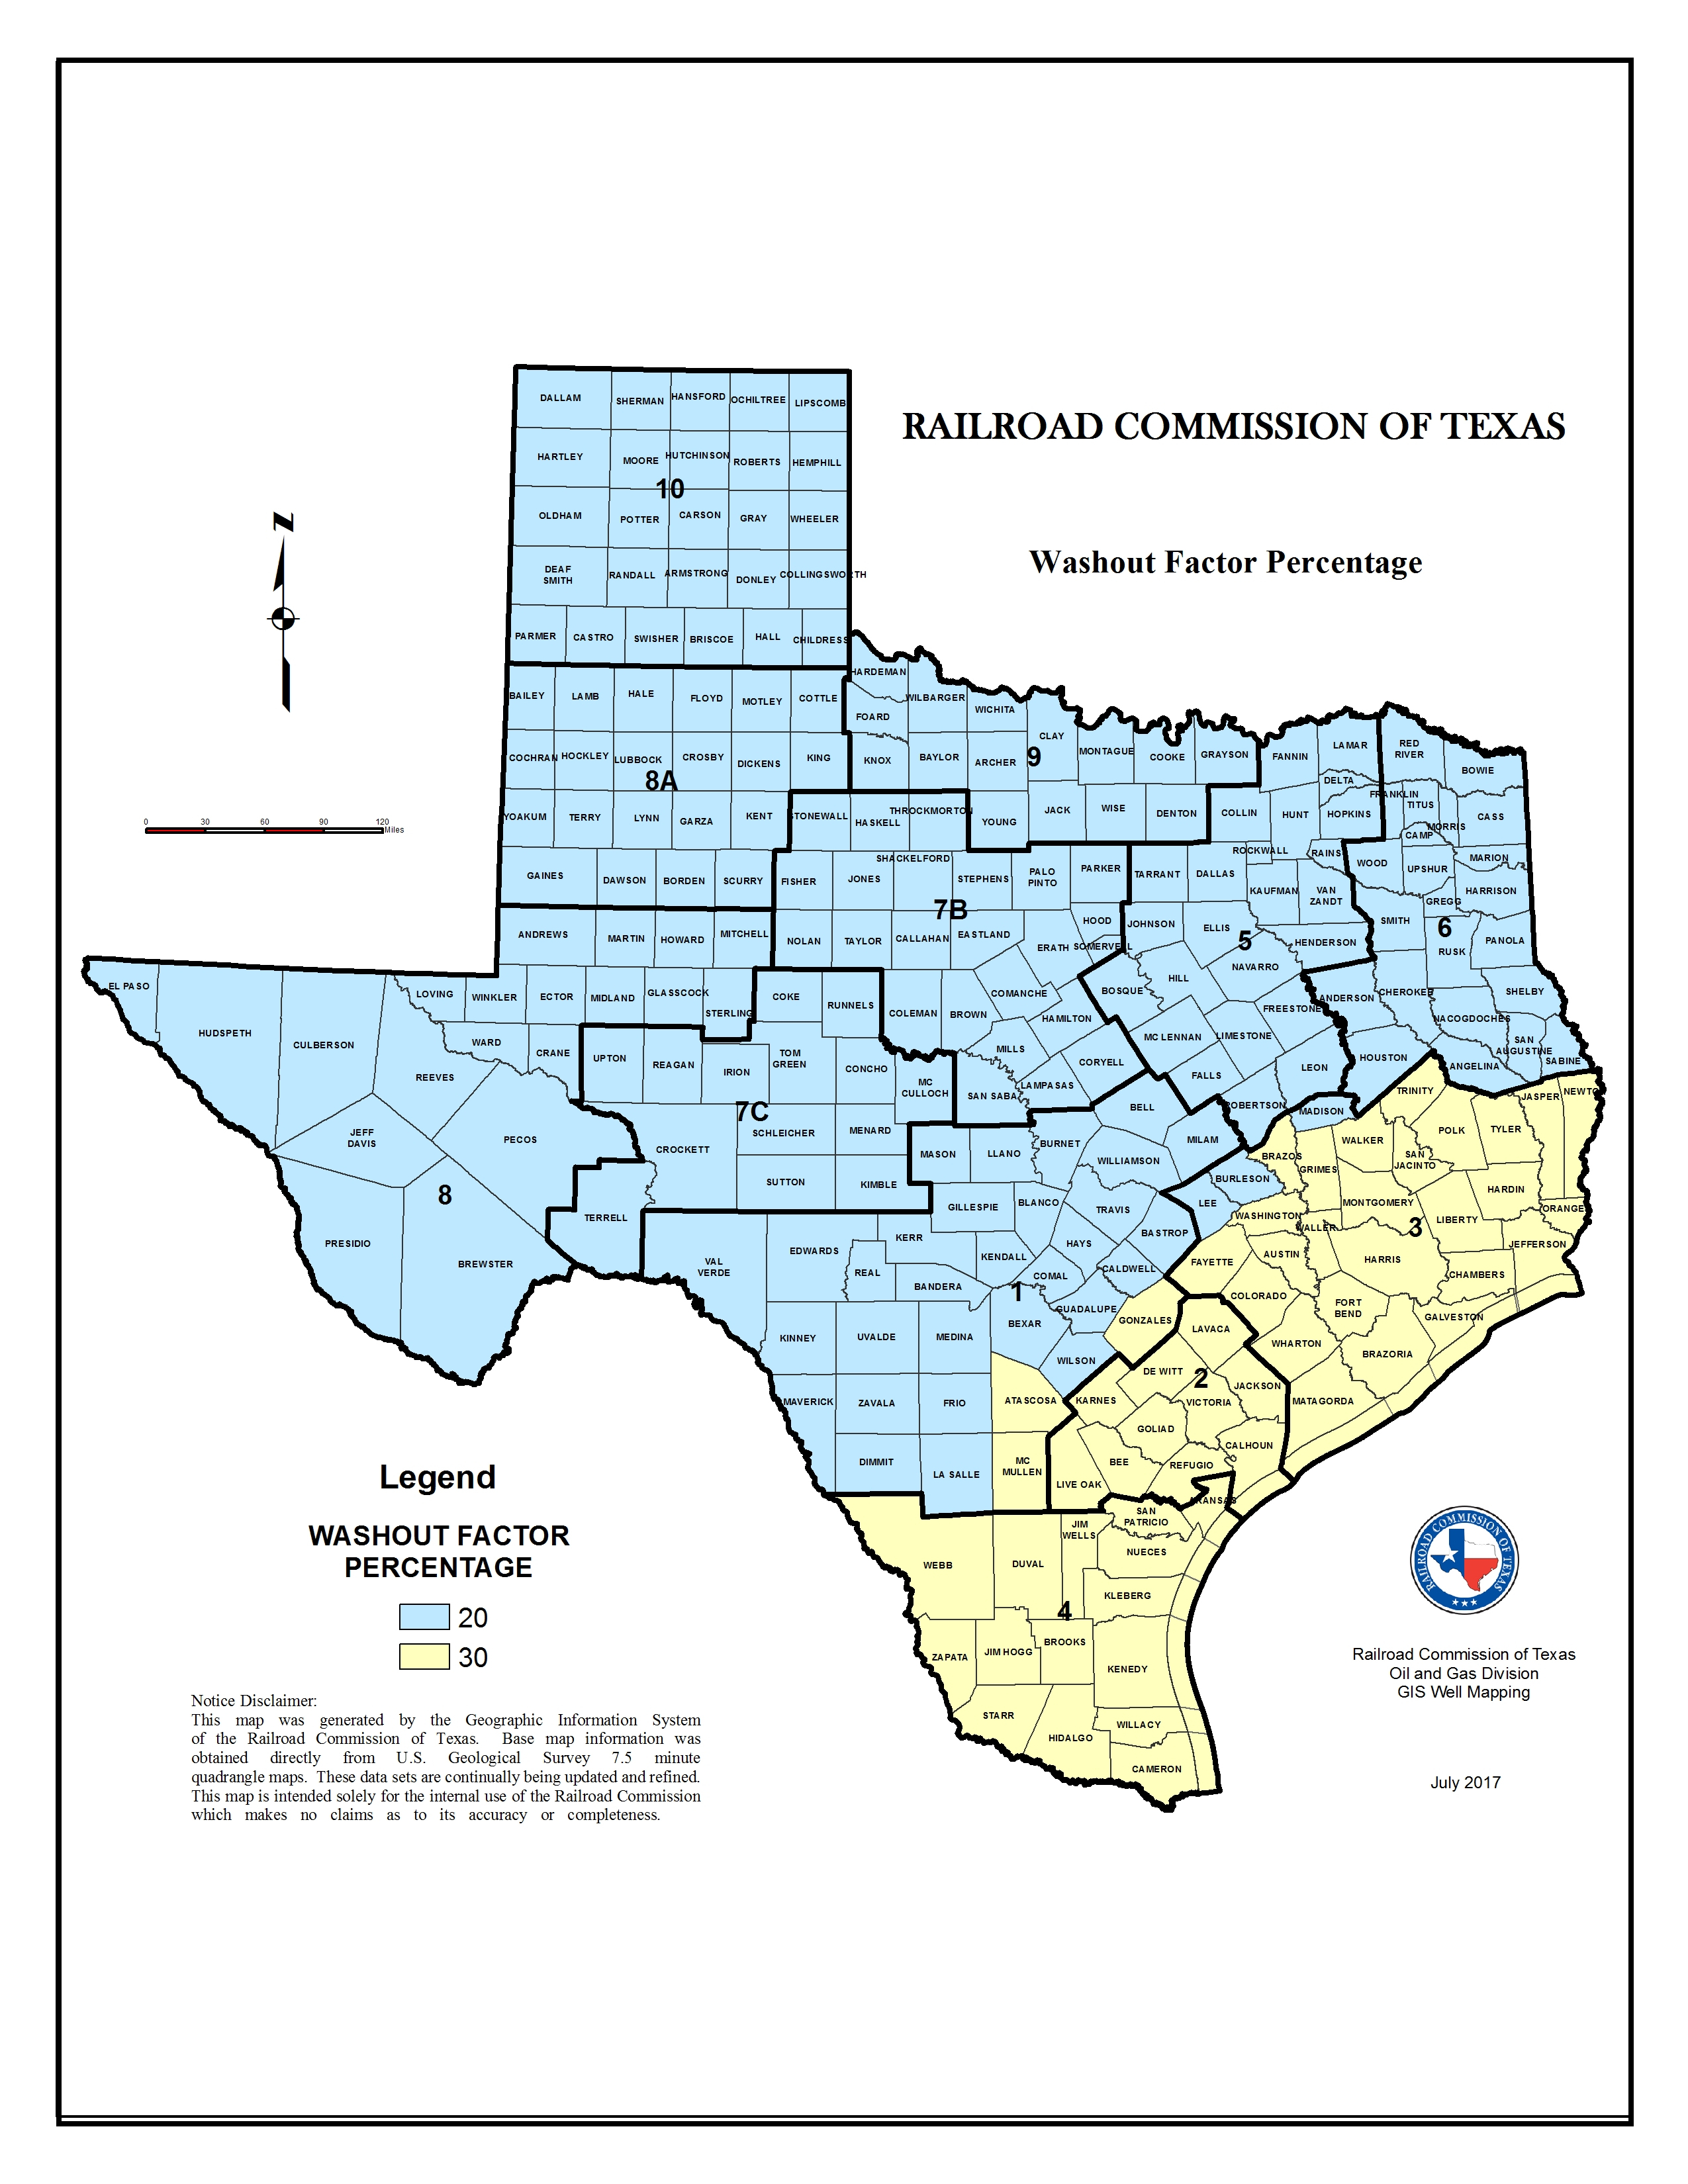 Texas Rrc - Washout Factors And Top Of Cement - Texas Railroad Commission Drilling Permits Map